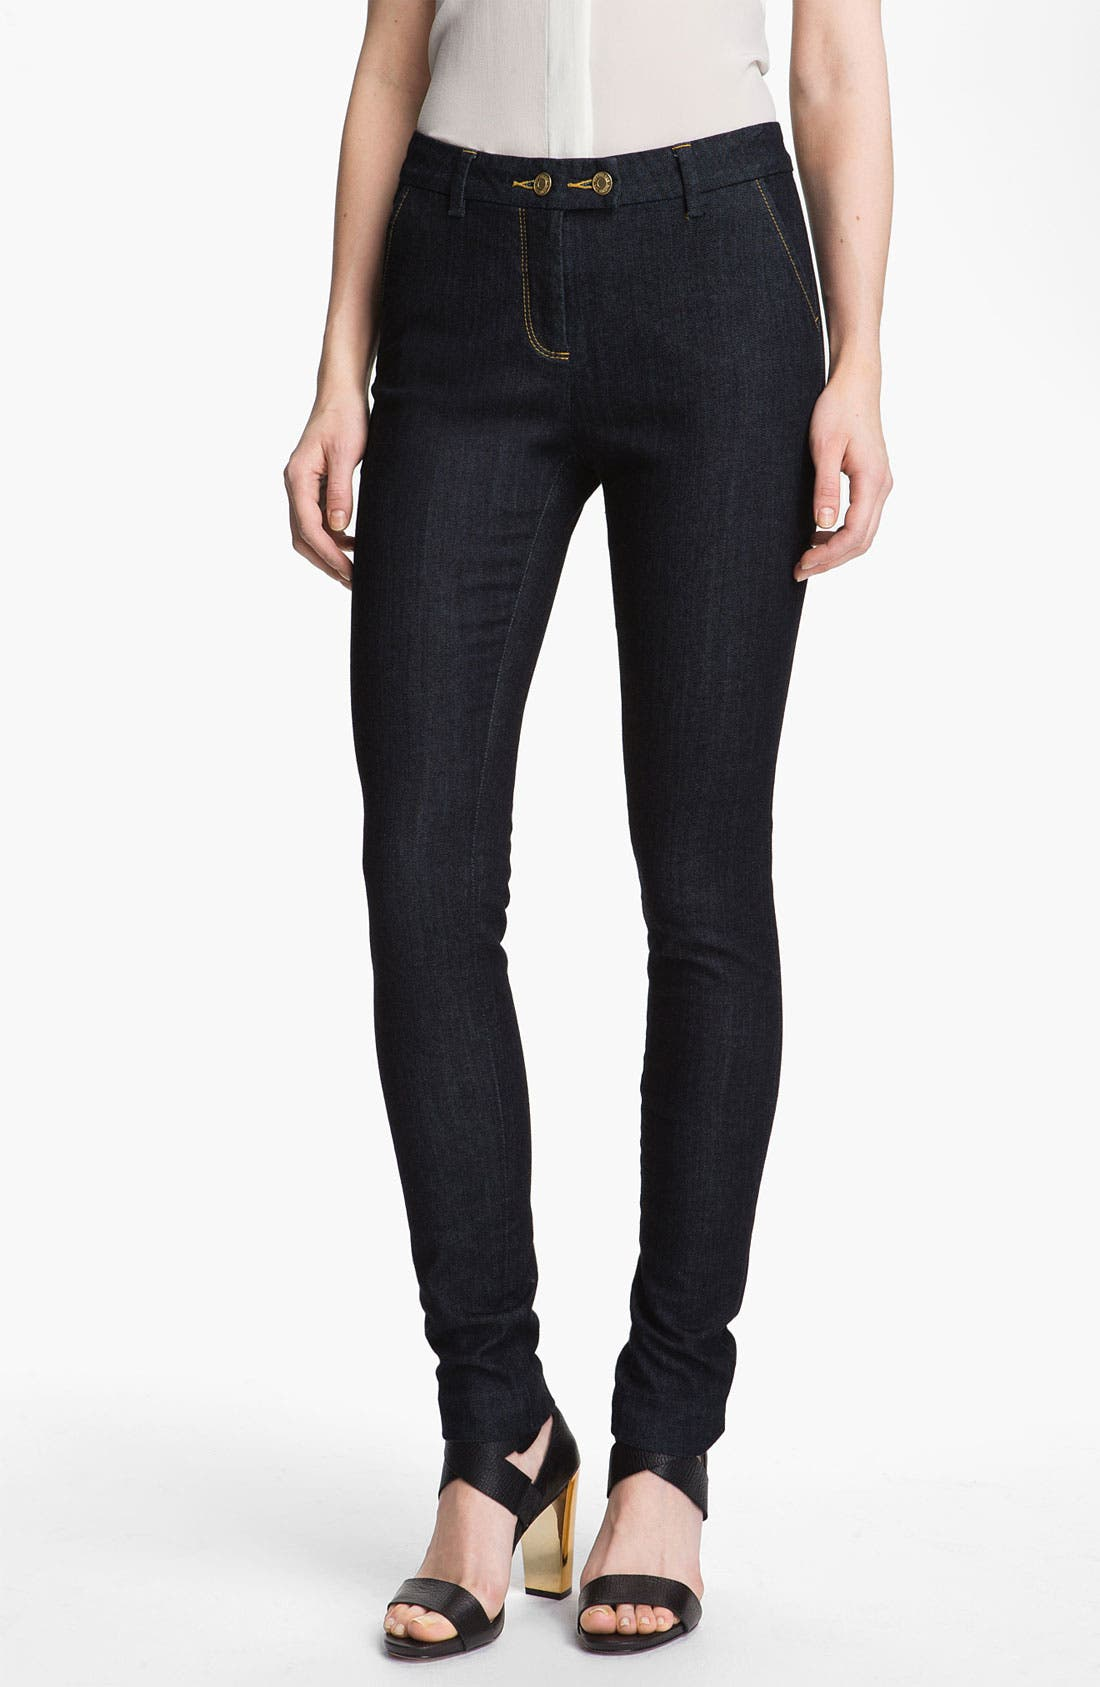 Alternate Image 1 Selected - Rachel Zoe 'Alek' Slim Jeans